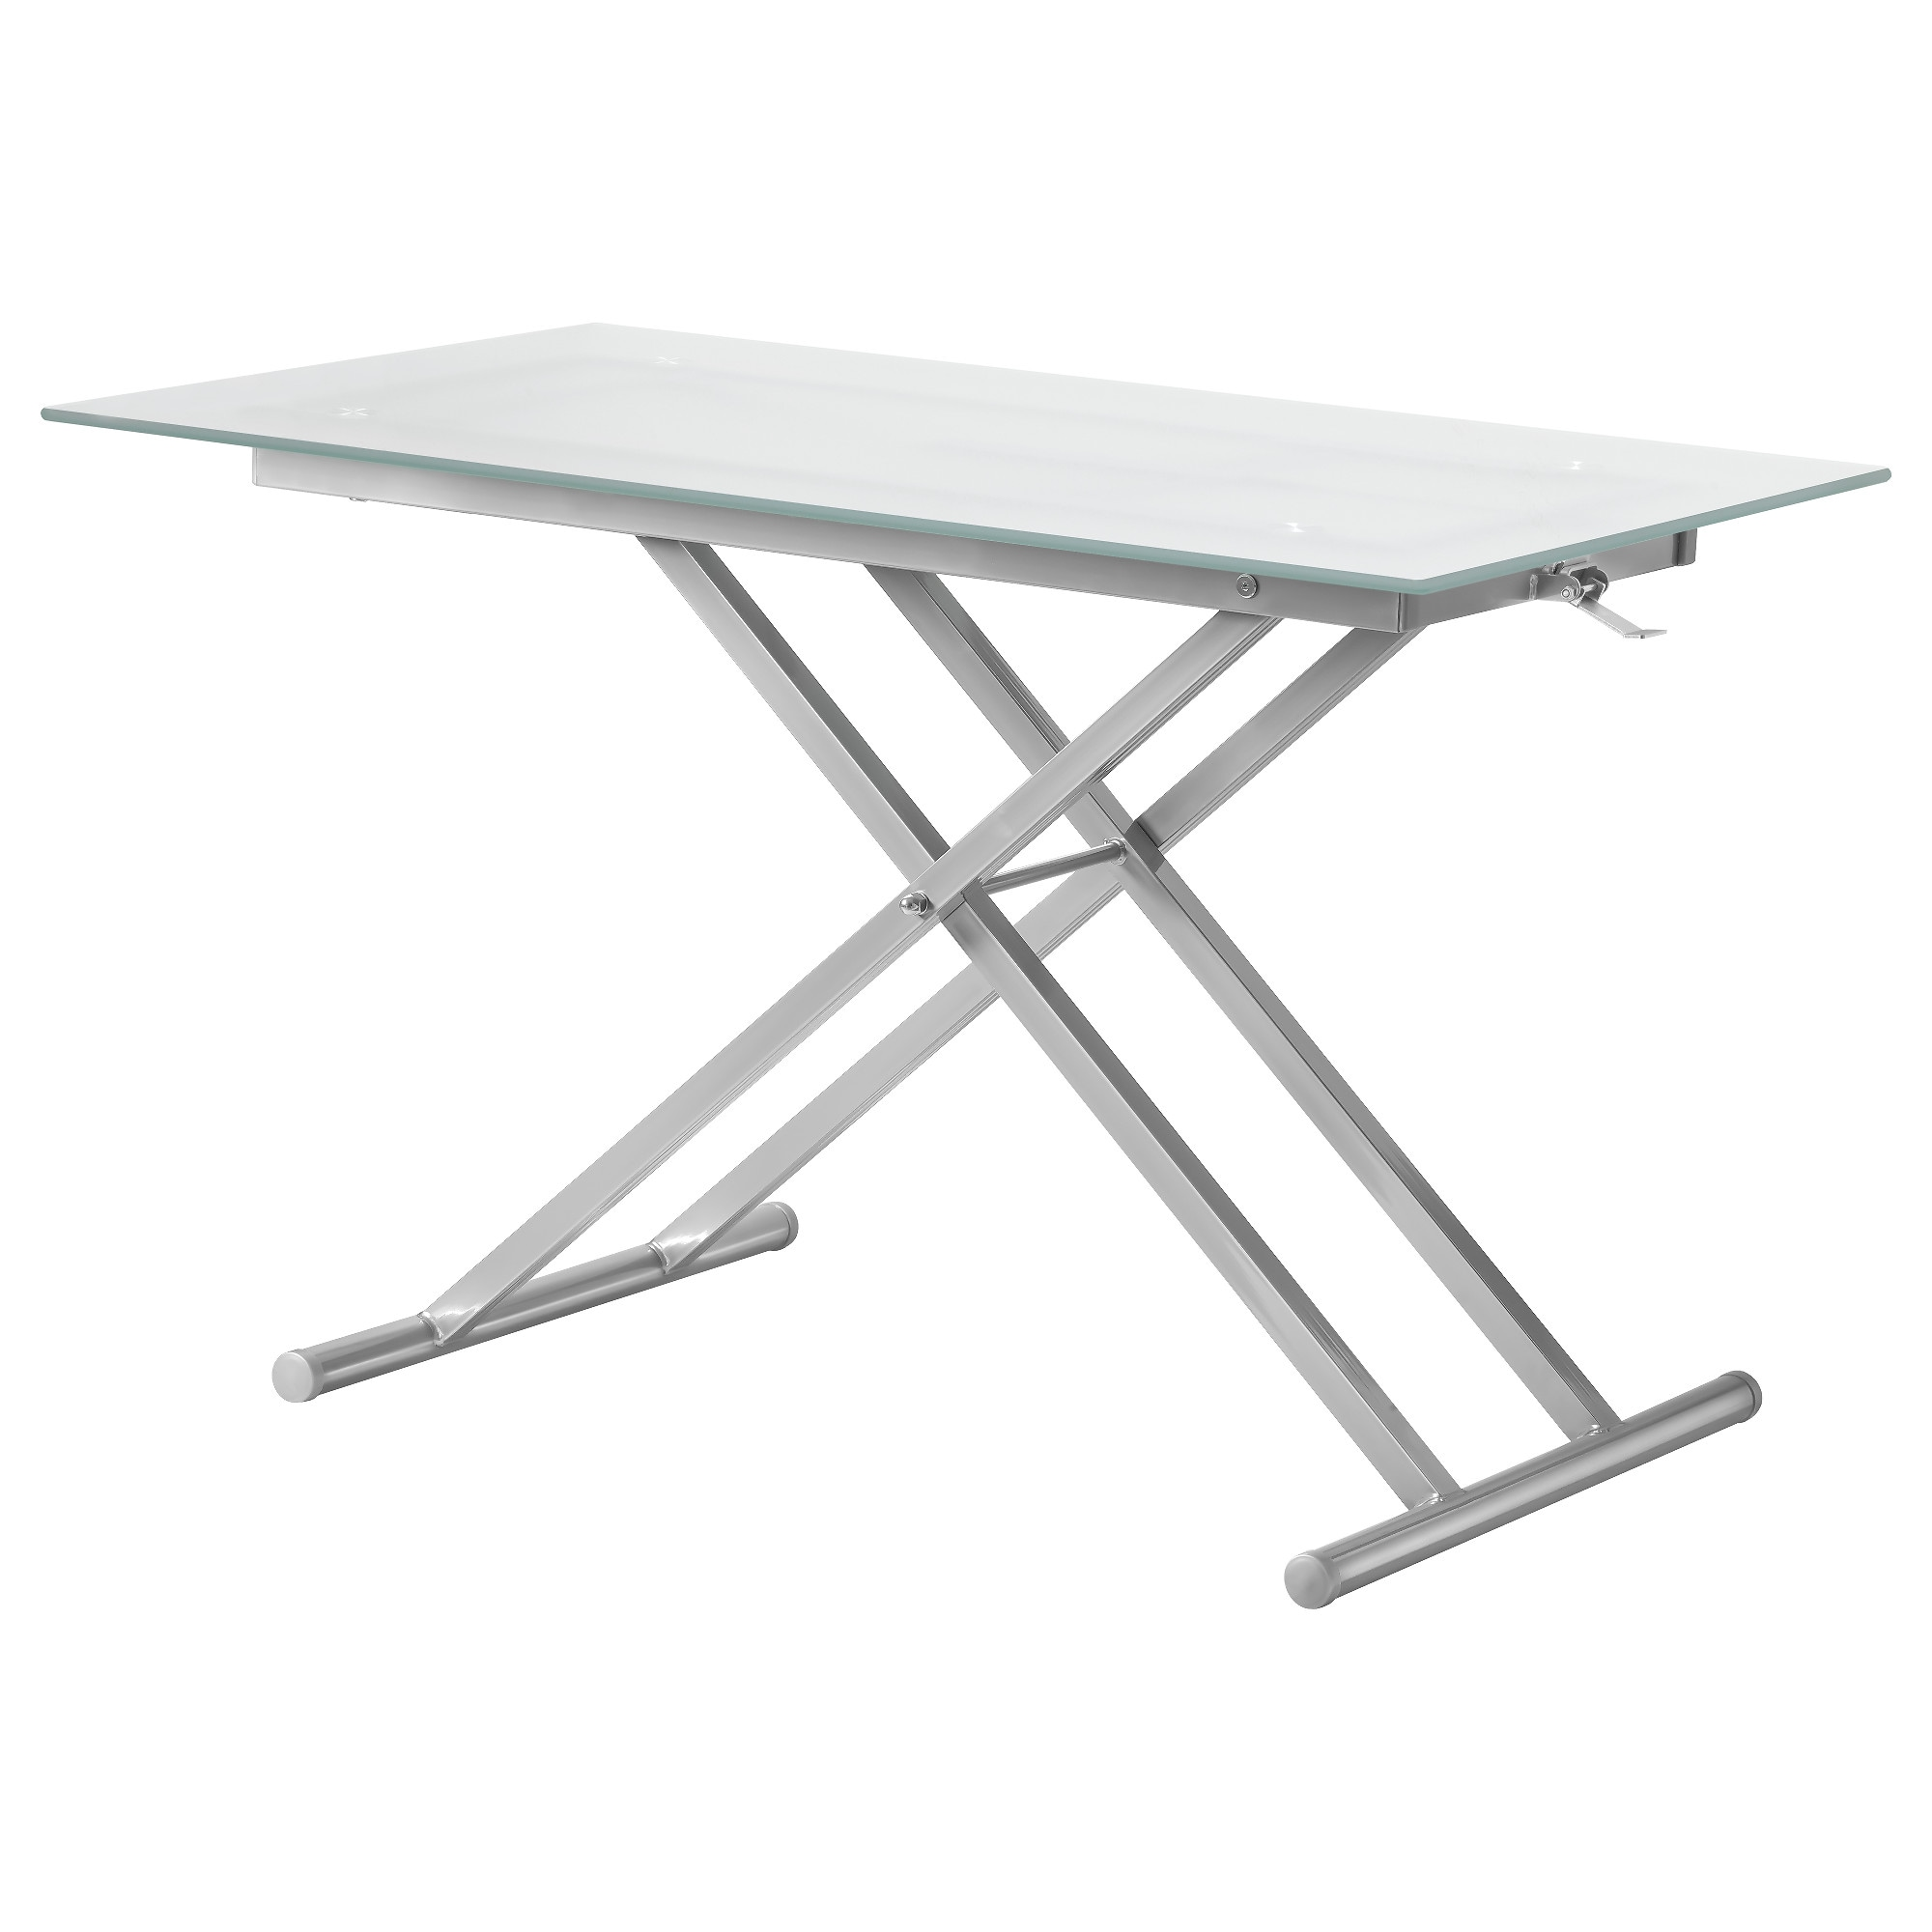 Table haute ikea a hauteur ajustable table de lit for Lit hauteur ikea